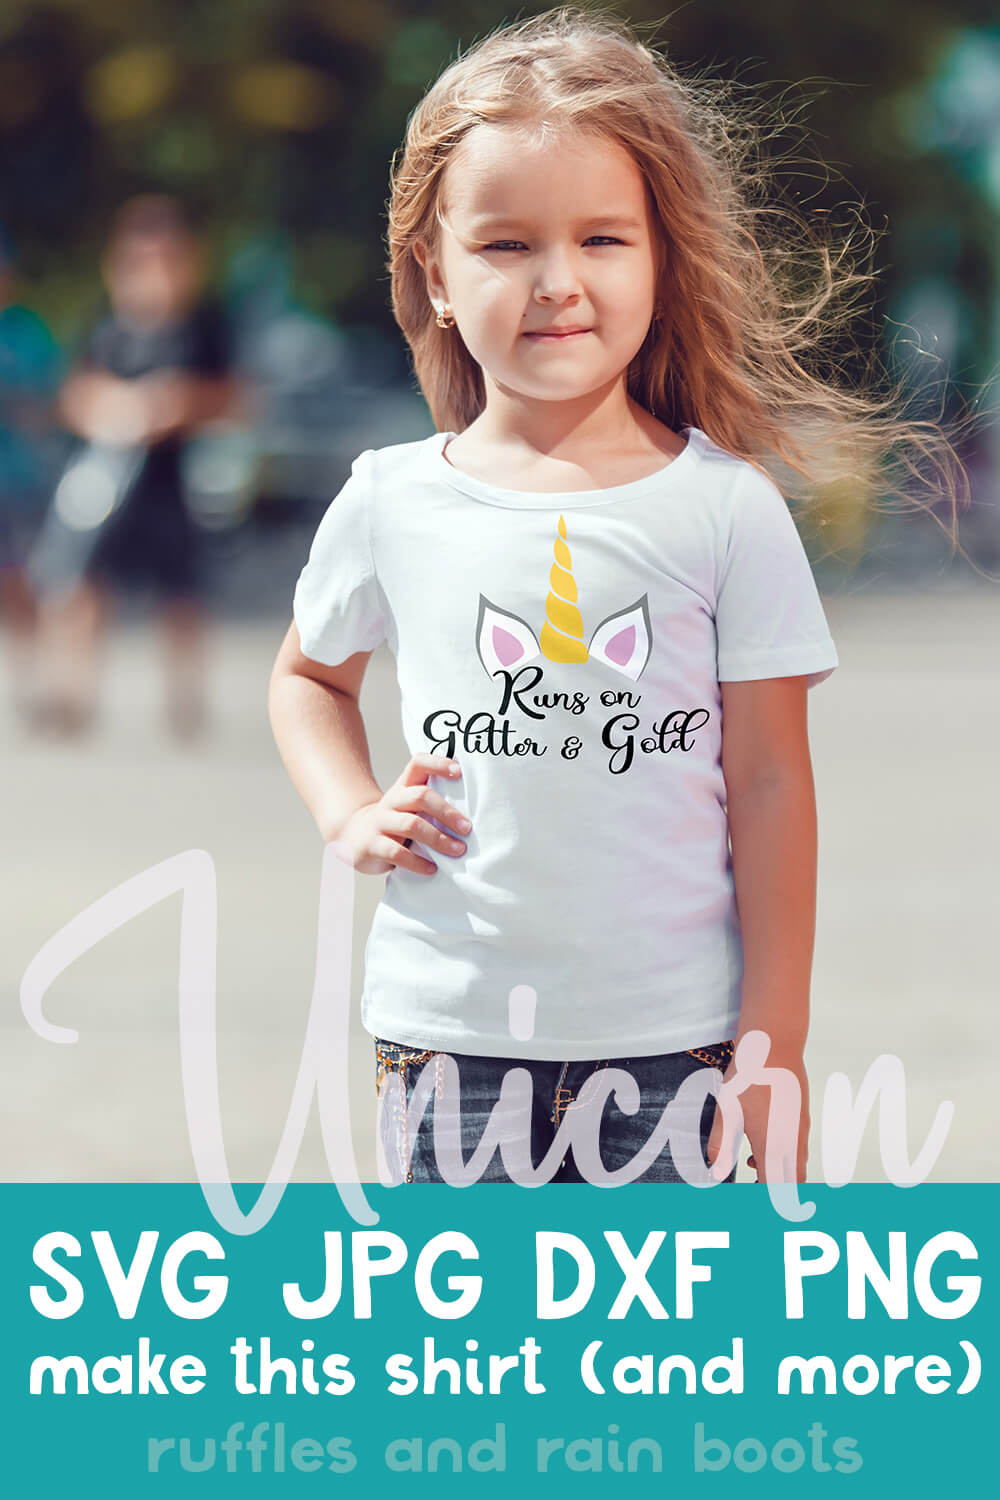 runs on glitter and gold free unicorn cut file for silhouette on kid t-shirt that a little girl is wearing with text which reads unicorn svg jpg dxf png make this shirt (and more!)